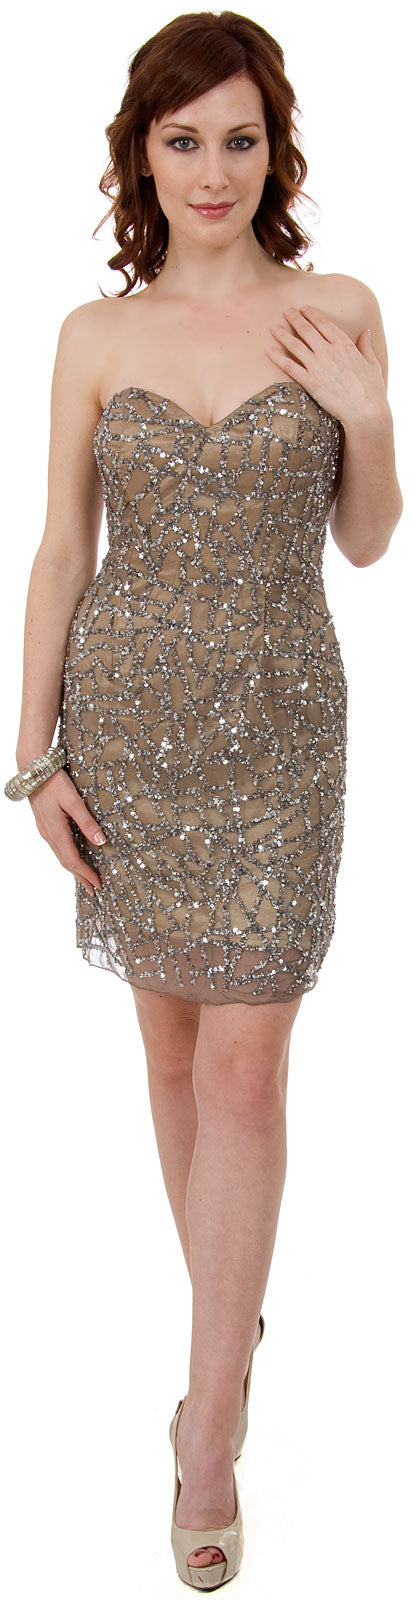 Main image of Strapless Sequined Short Prom & Party Dress.